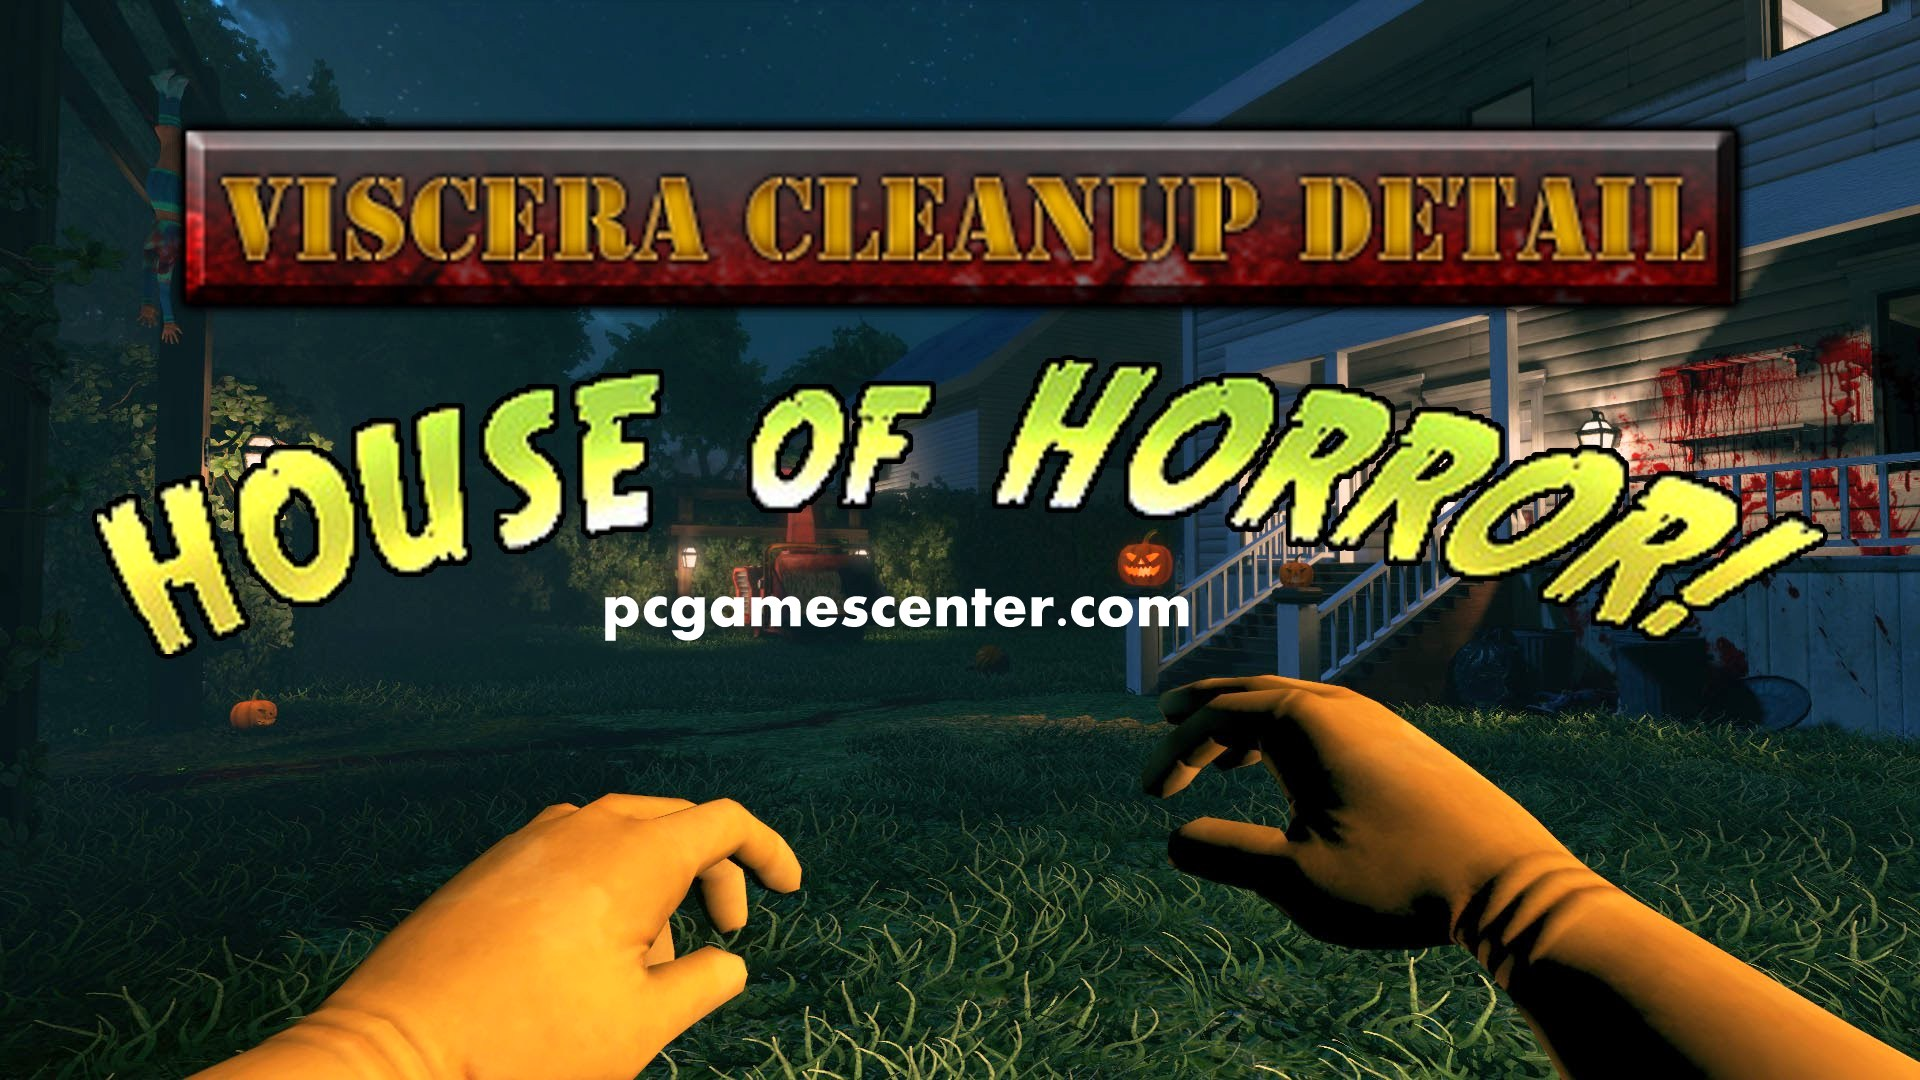 Viscera Cleanup Detail House of Horror Free Download PC Game setup